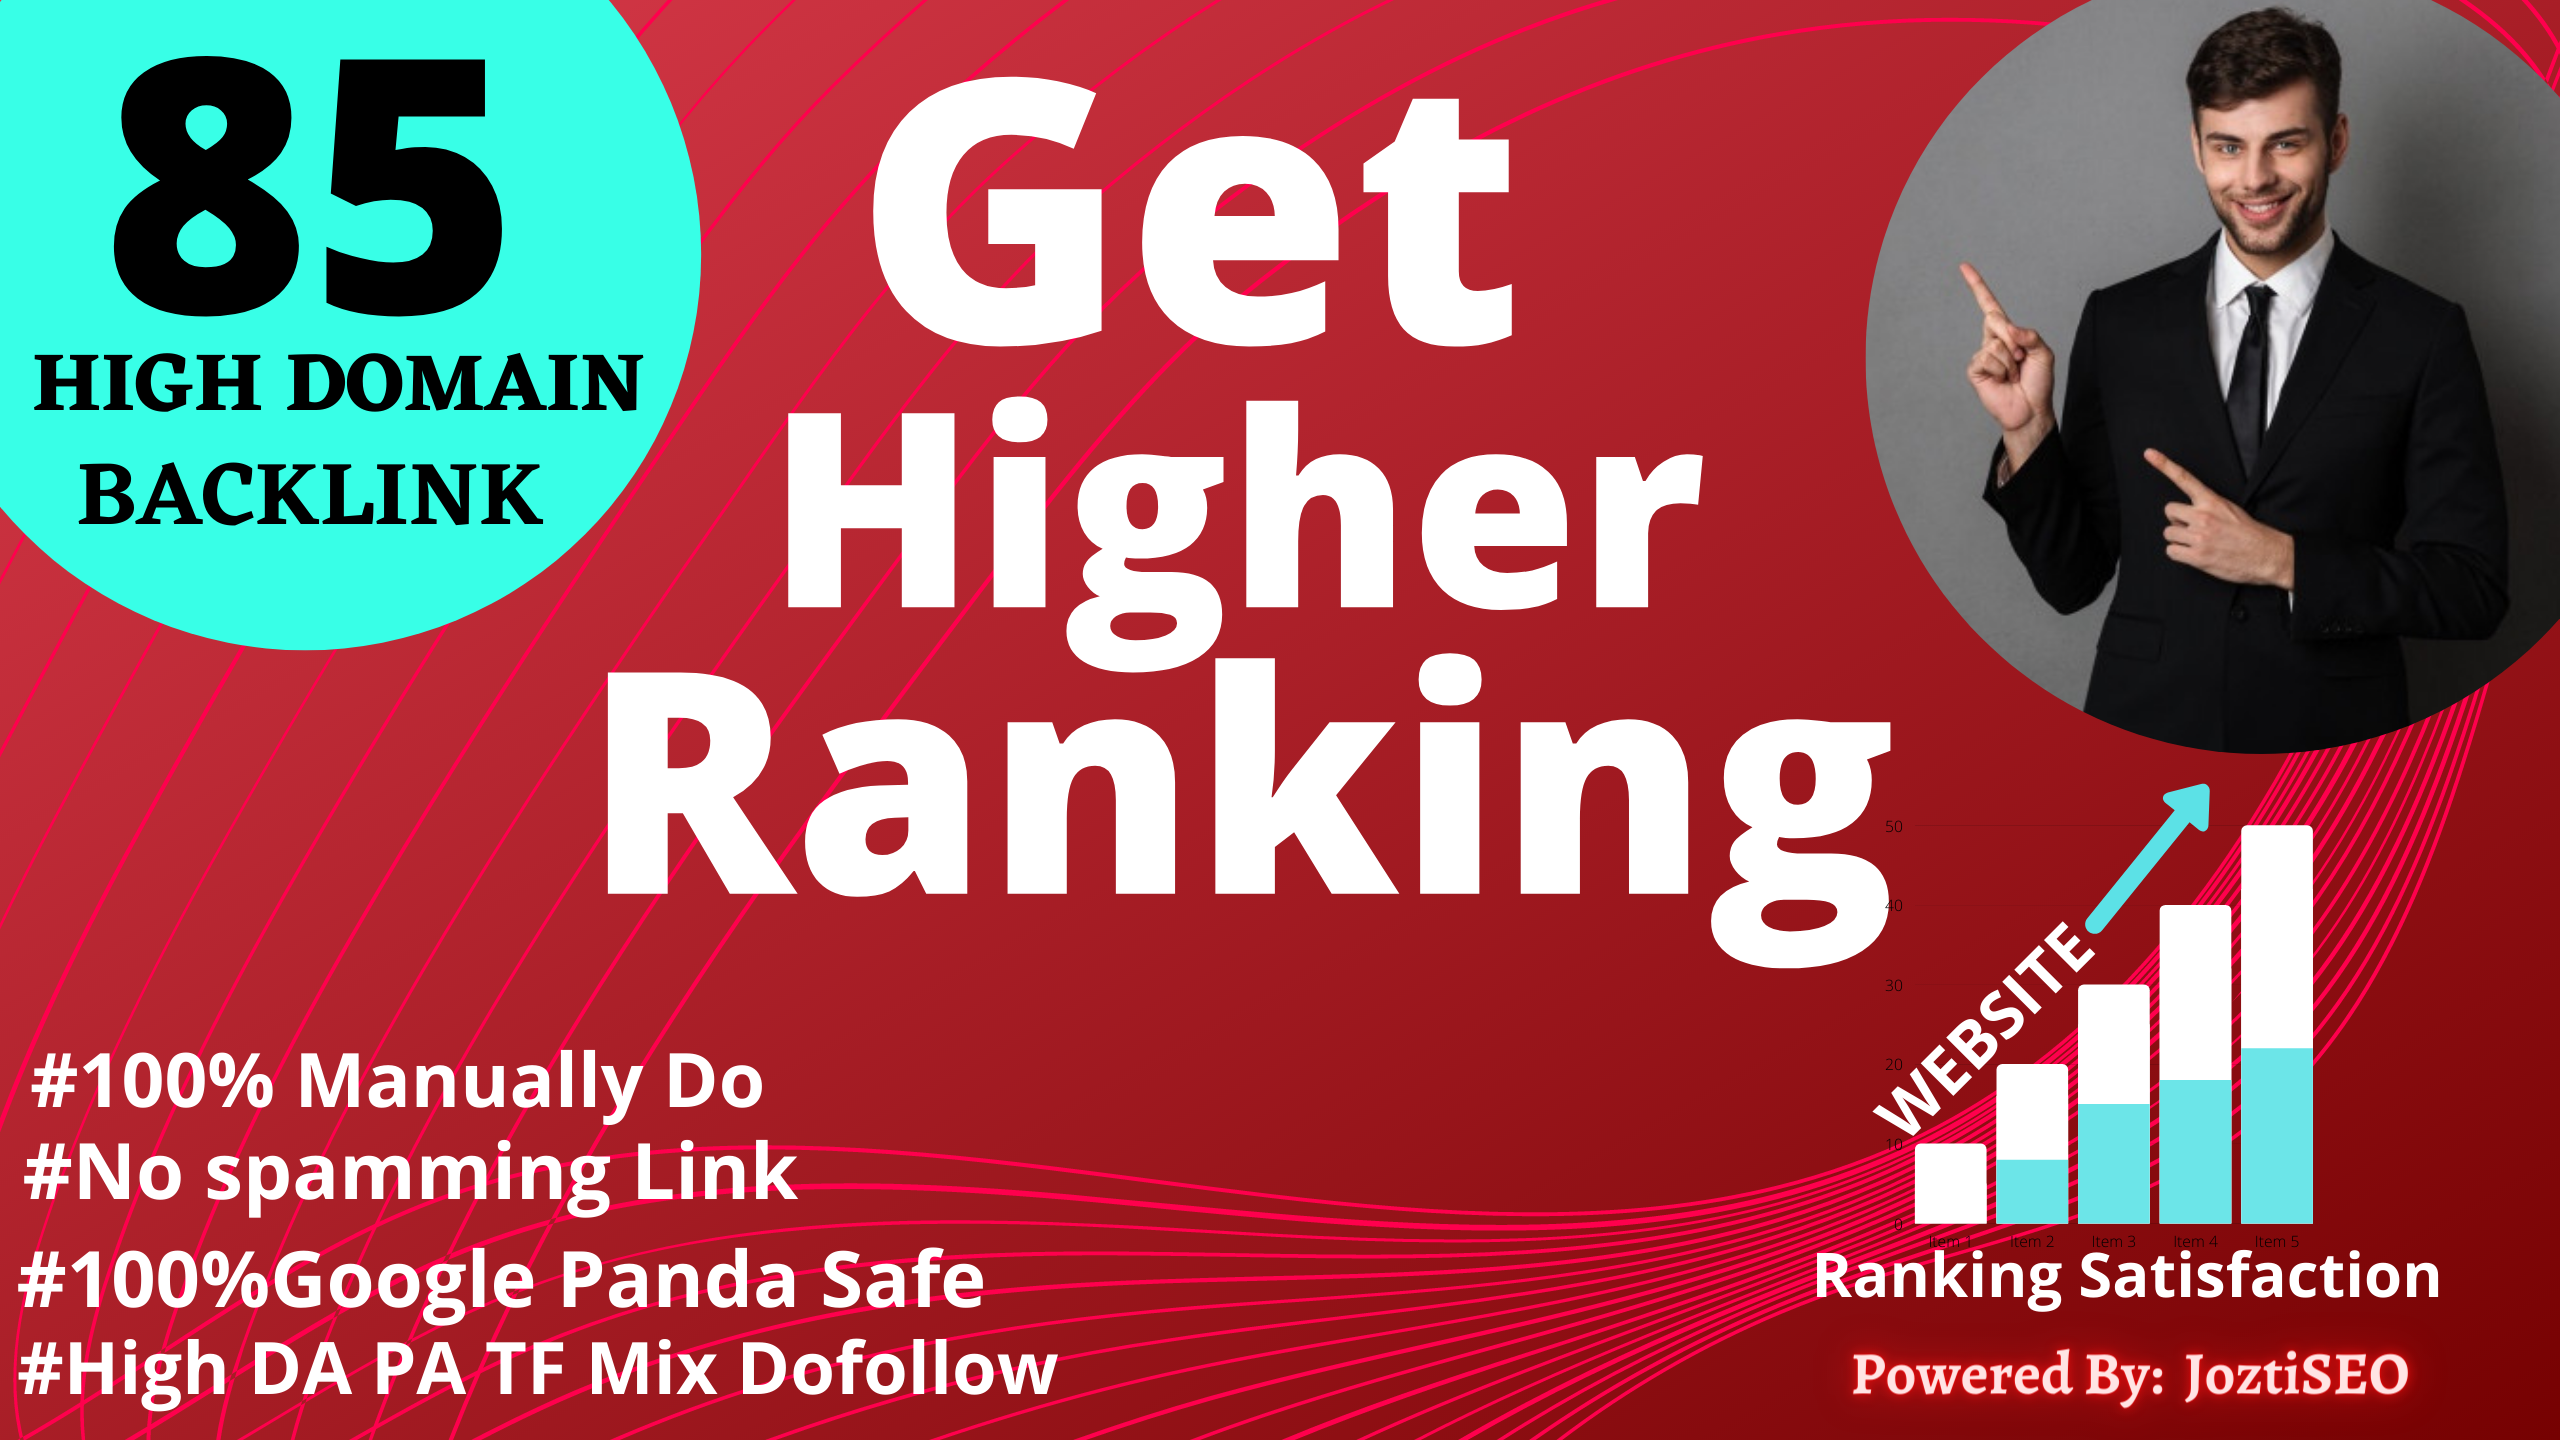 GET HIGHER RANKING WITH 85 DA PA TF High Doamin Authority Backlinks